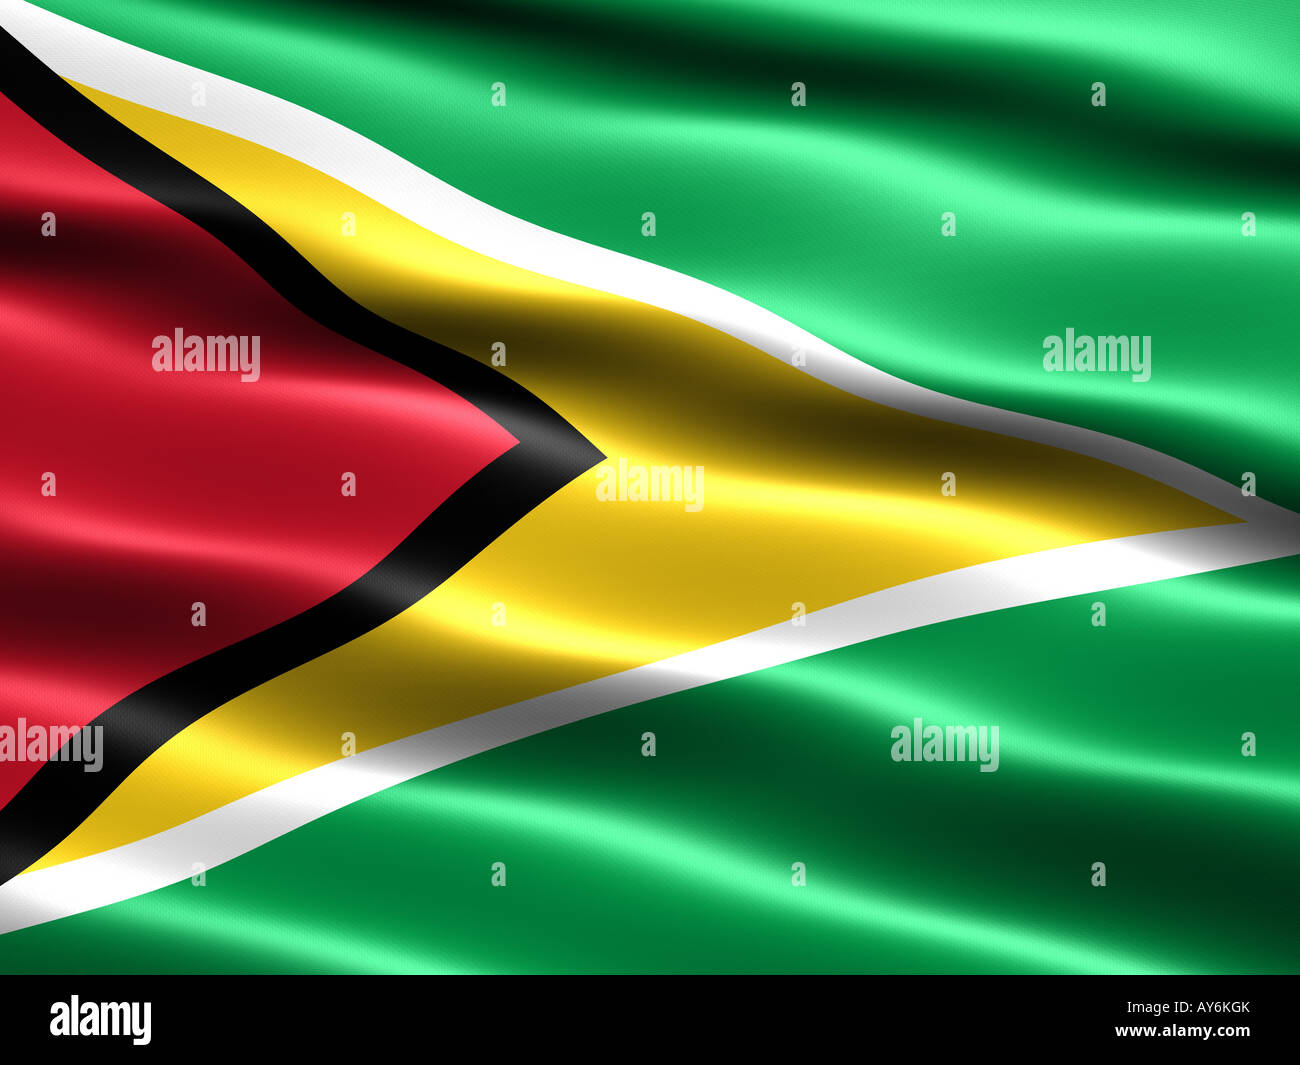 Flag of Guyana computer generated illustration with silky appearance and waves - Stock Image